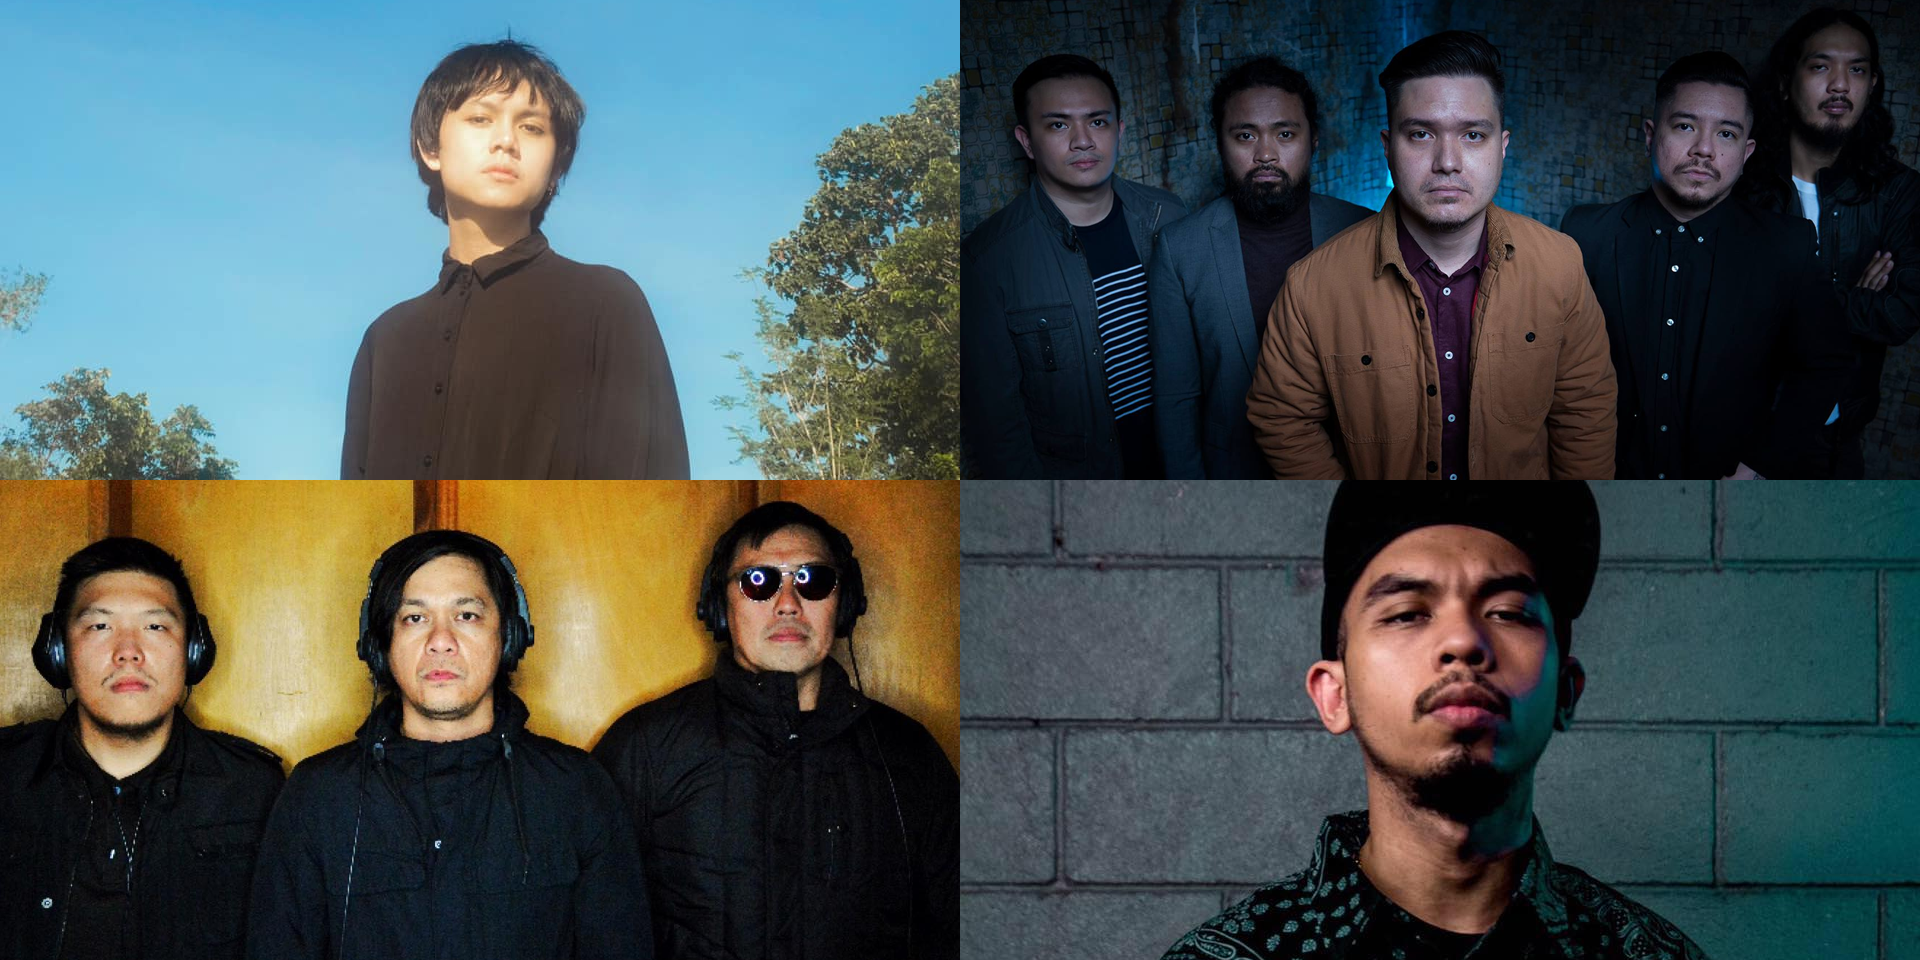 Zild, Faspitch, Loonie, Squid 9, and more release new music – listen